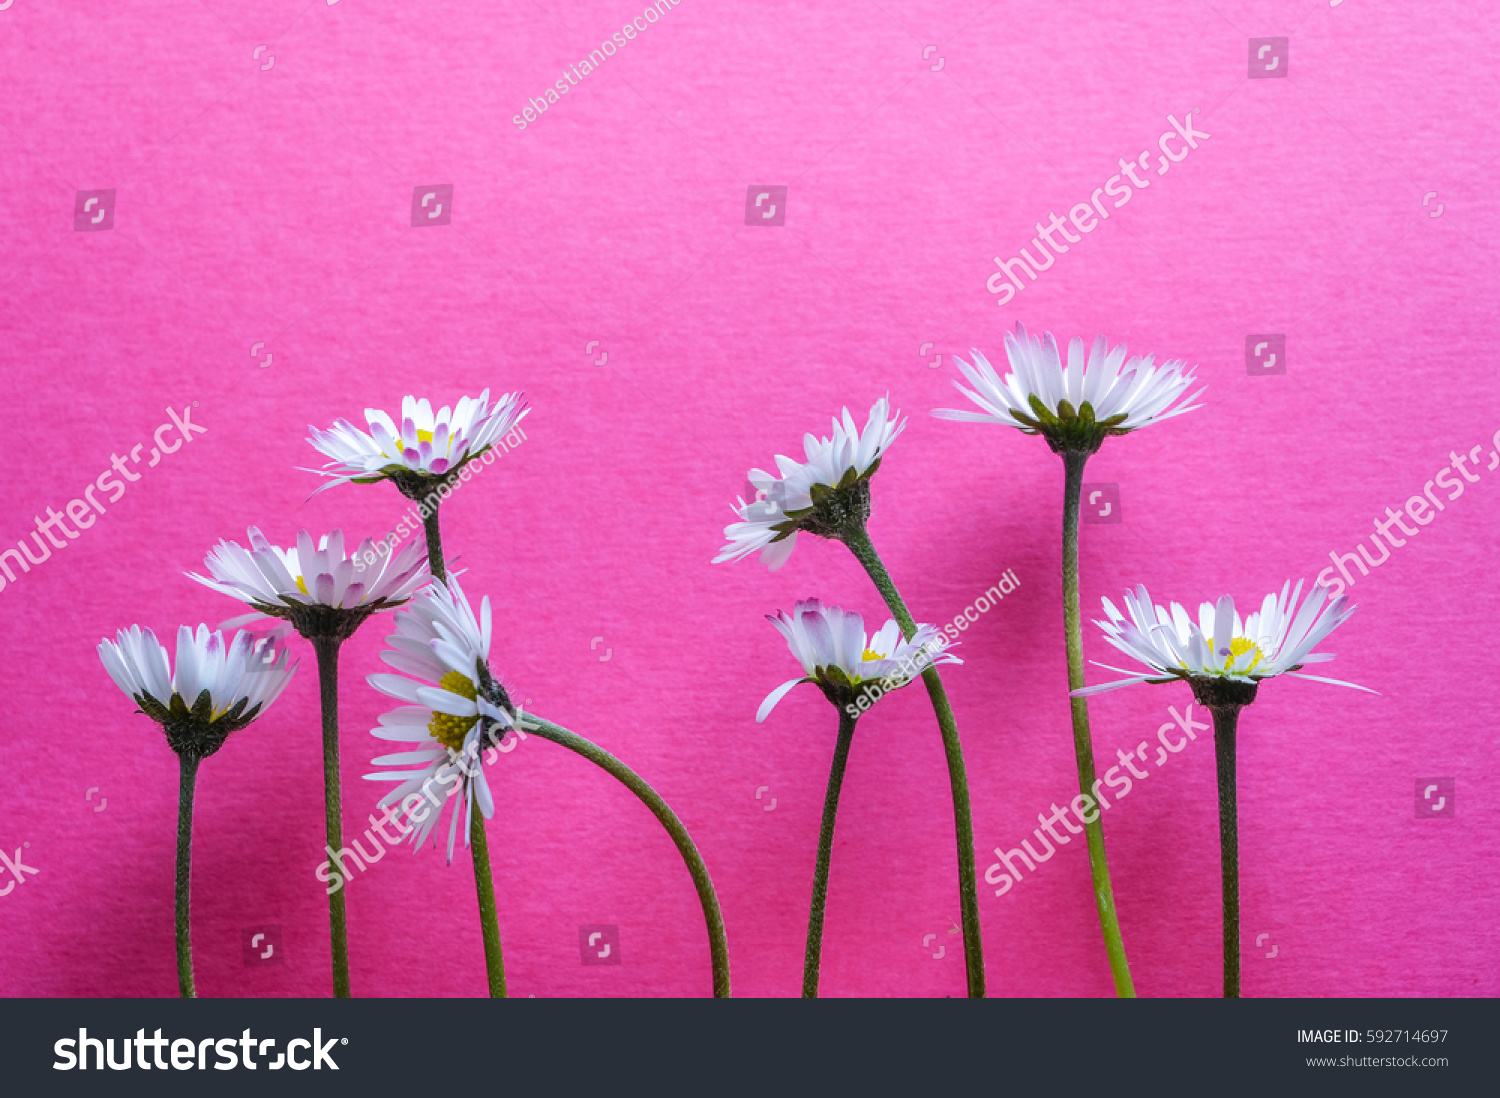 Group little daisy flowers on bright stock photo edit now group of little daisy flowers on bright pink textured background closeup izmirmasajfo